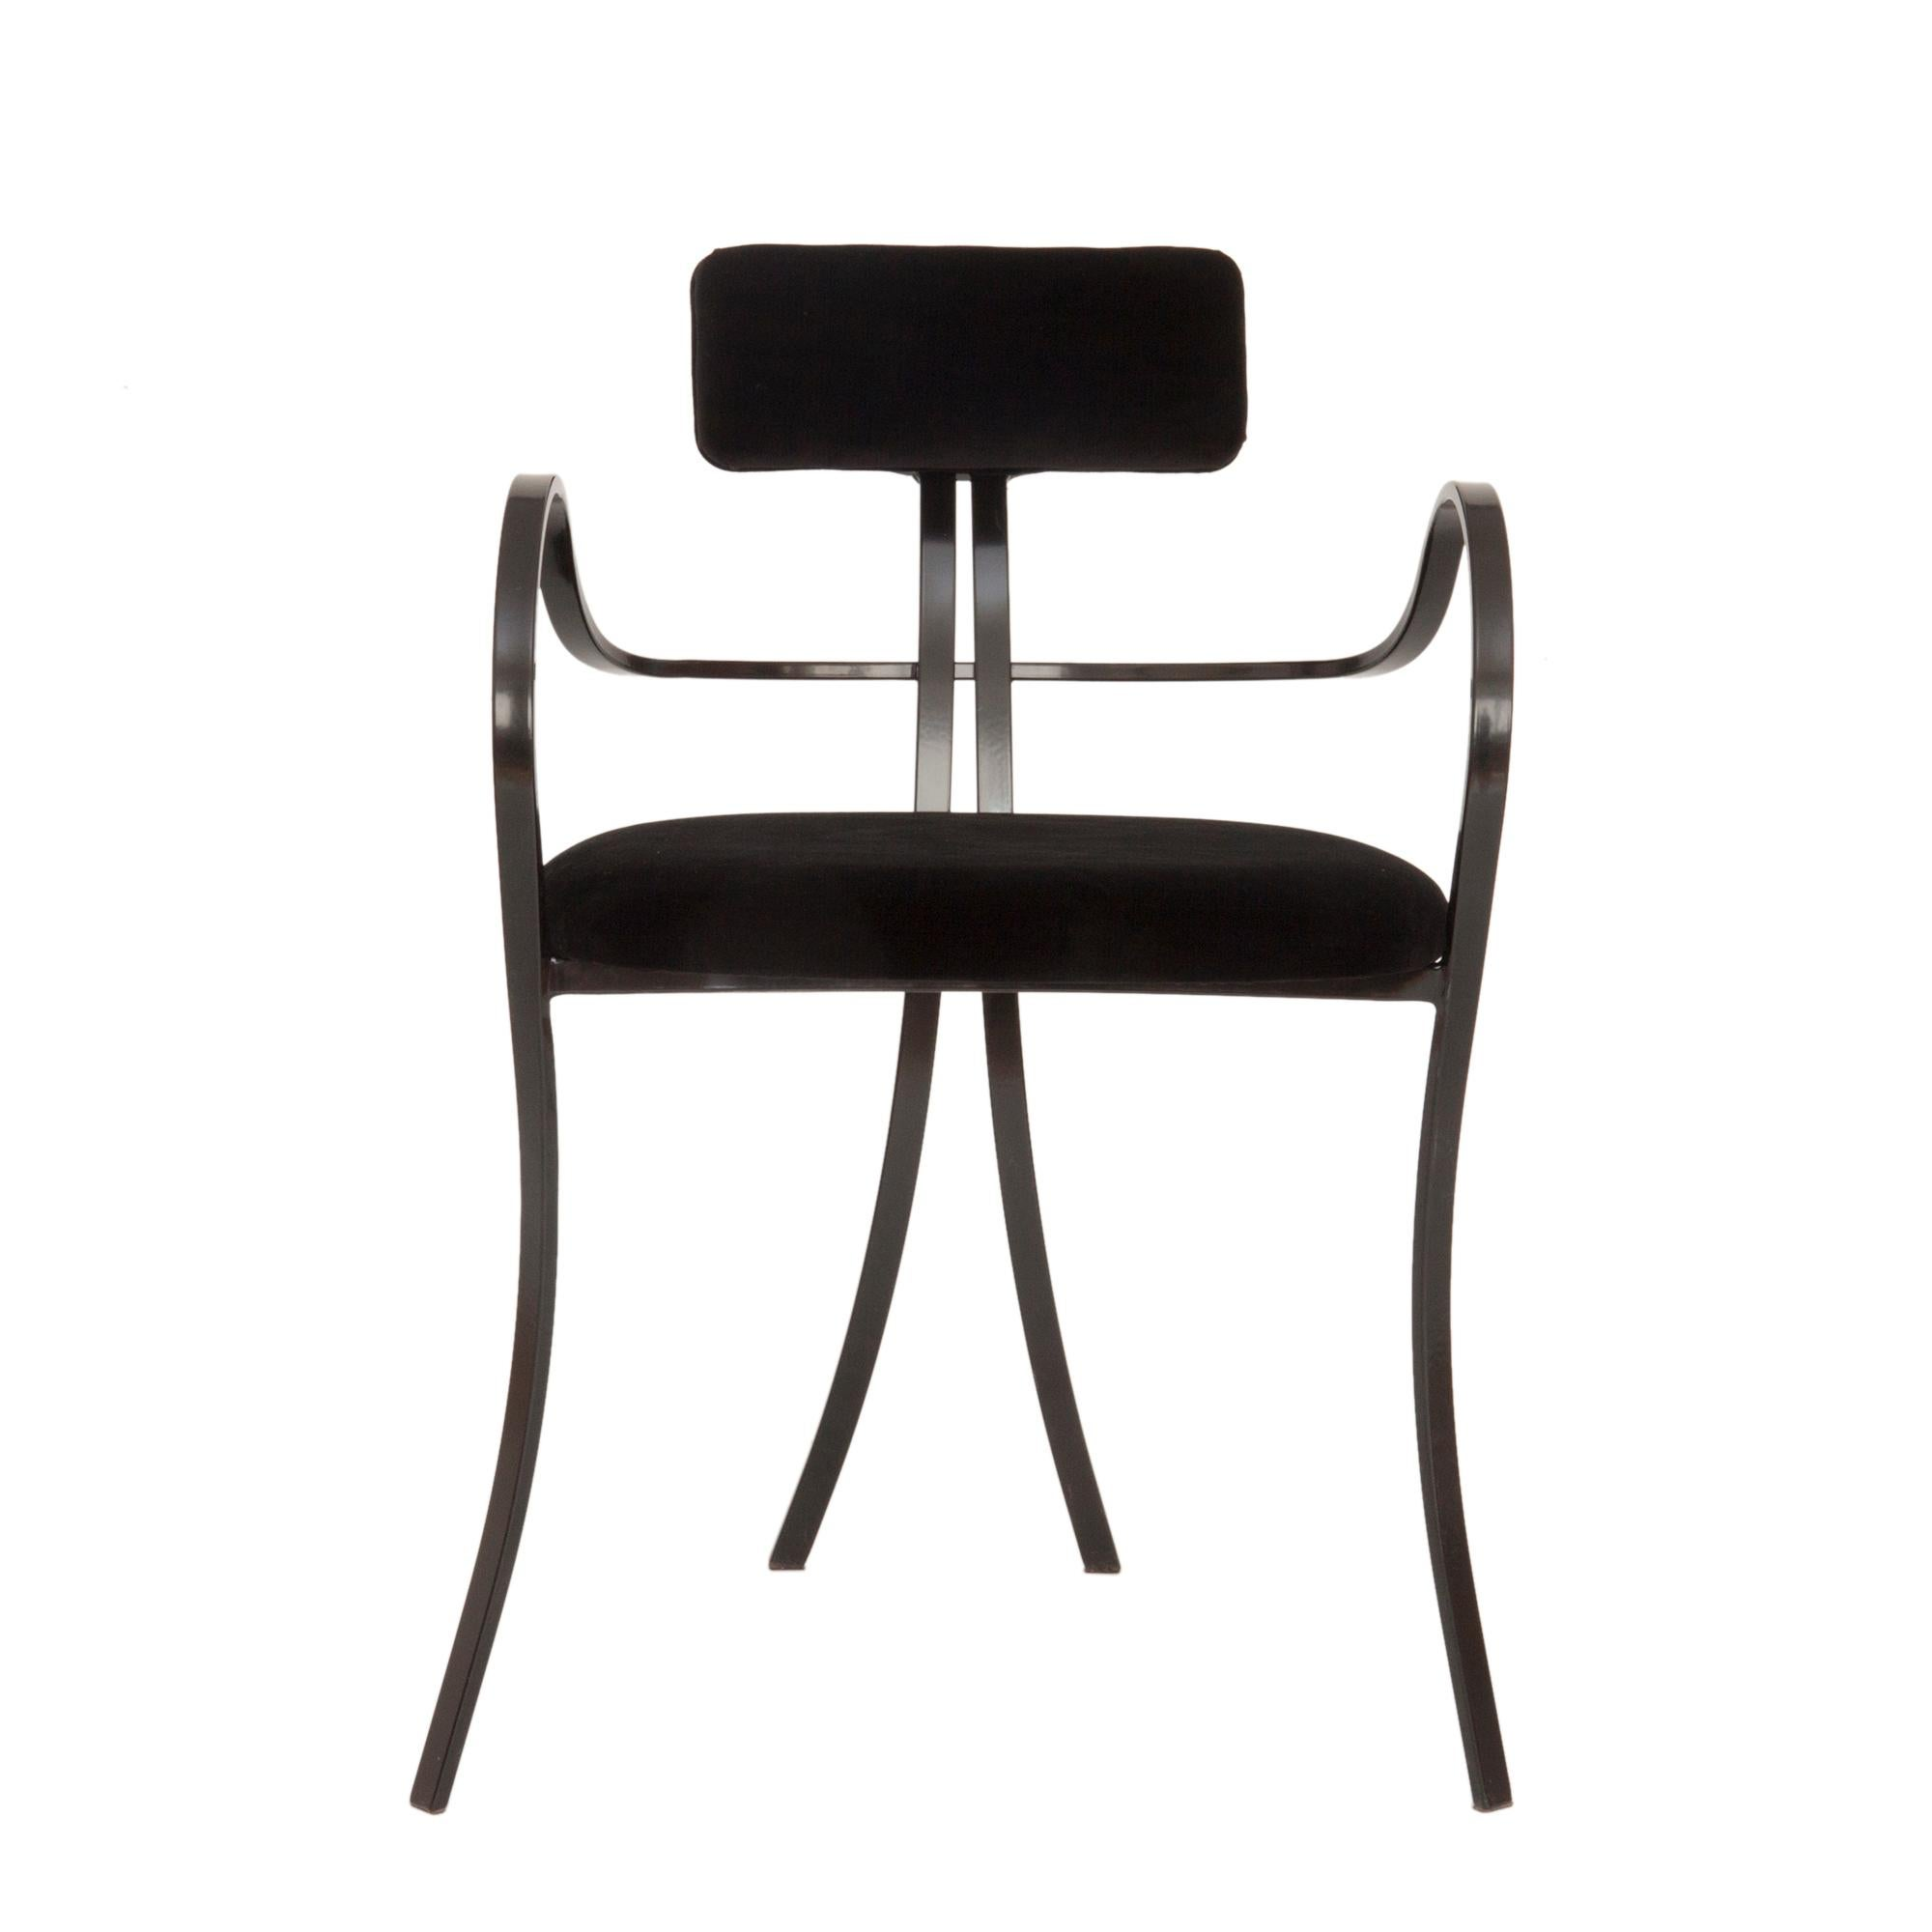 Contemporary Violet Chair with Velvet Seat and Seatback in Black Color